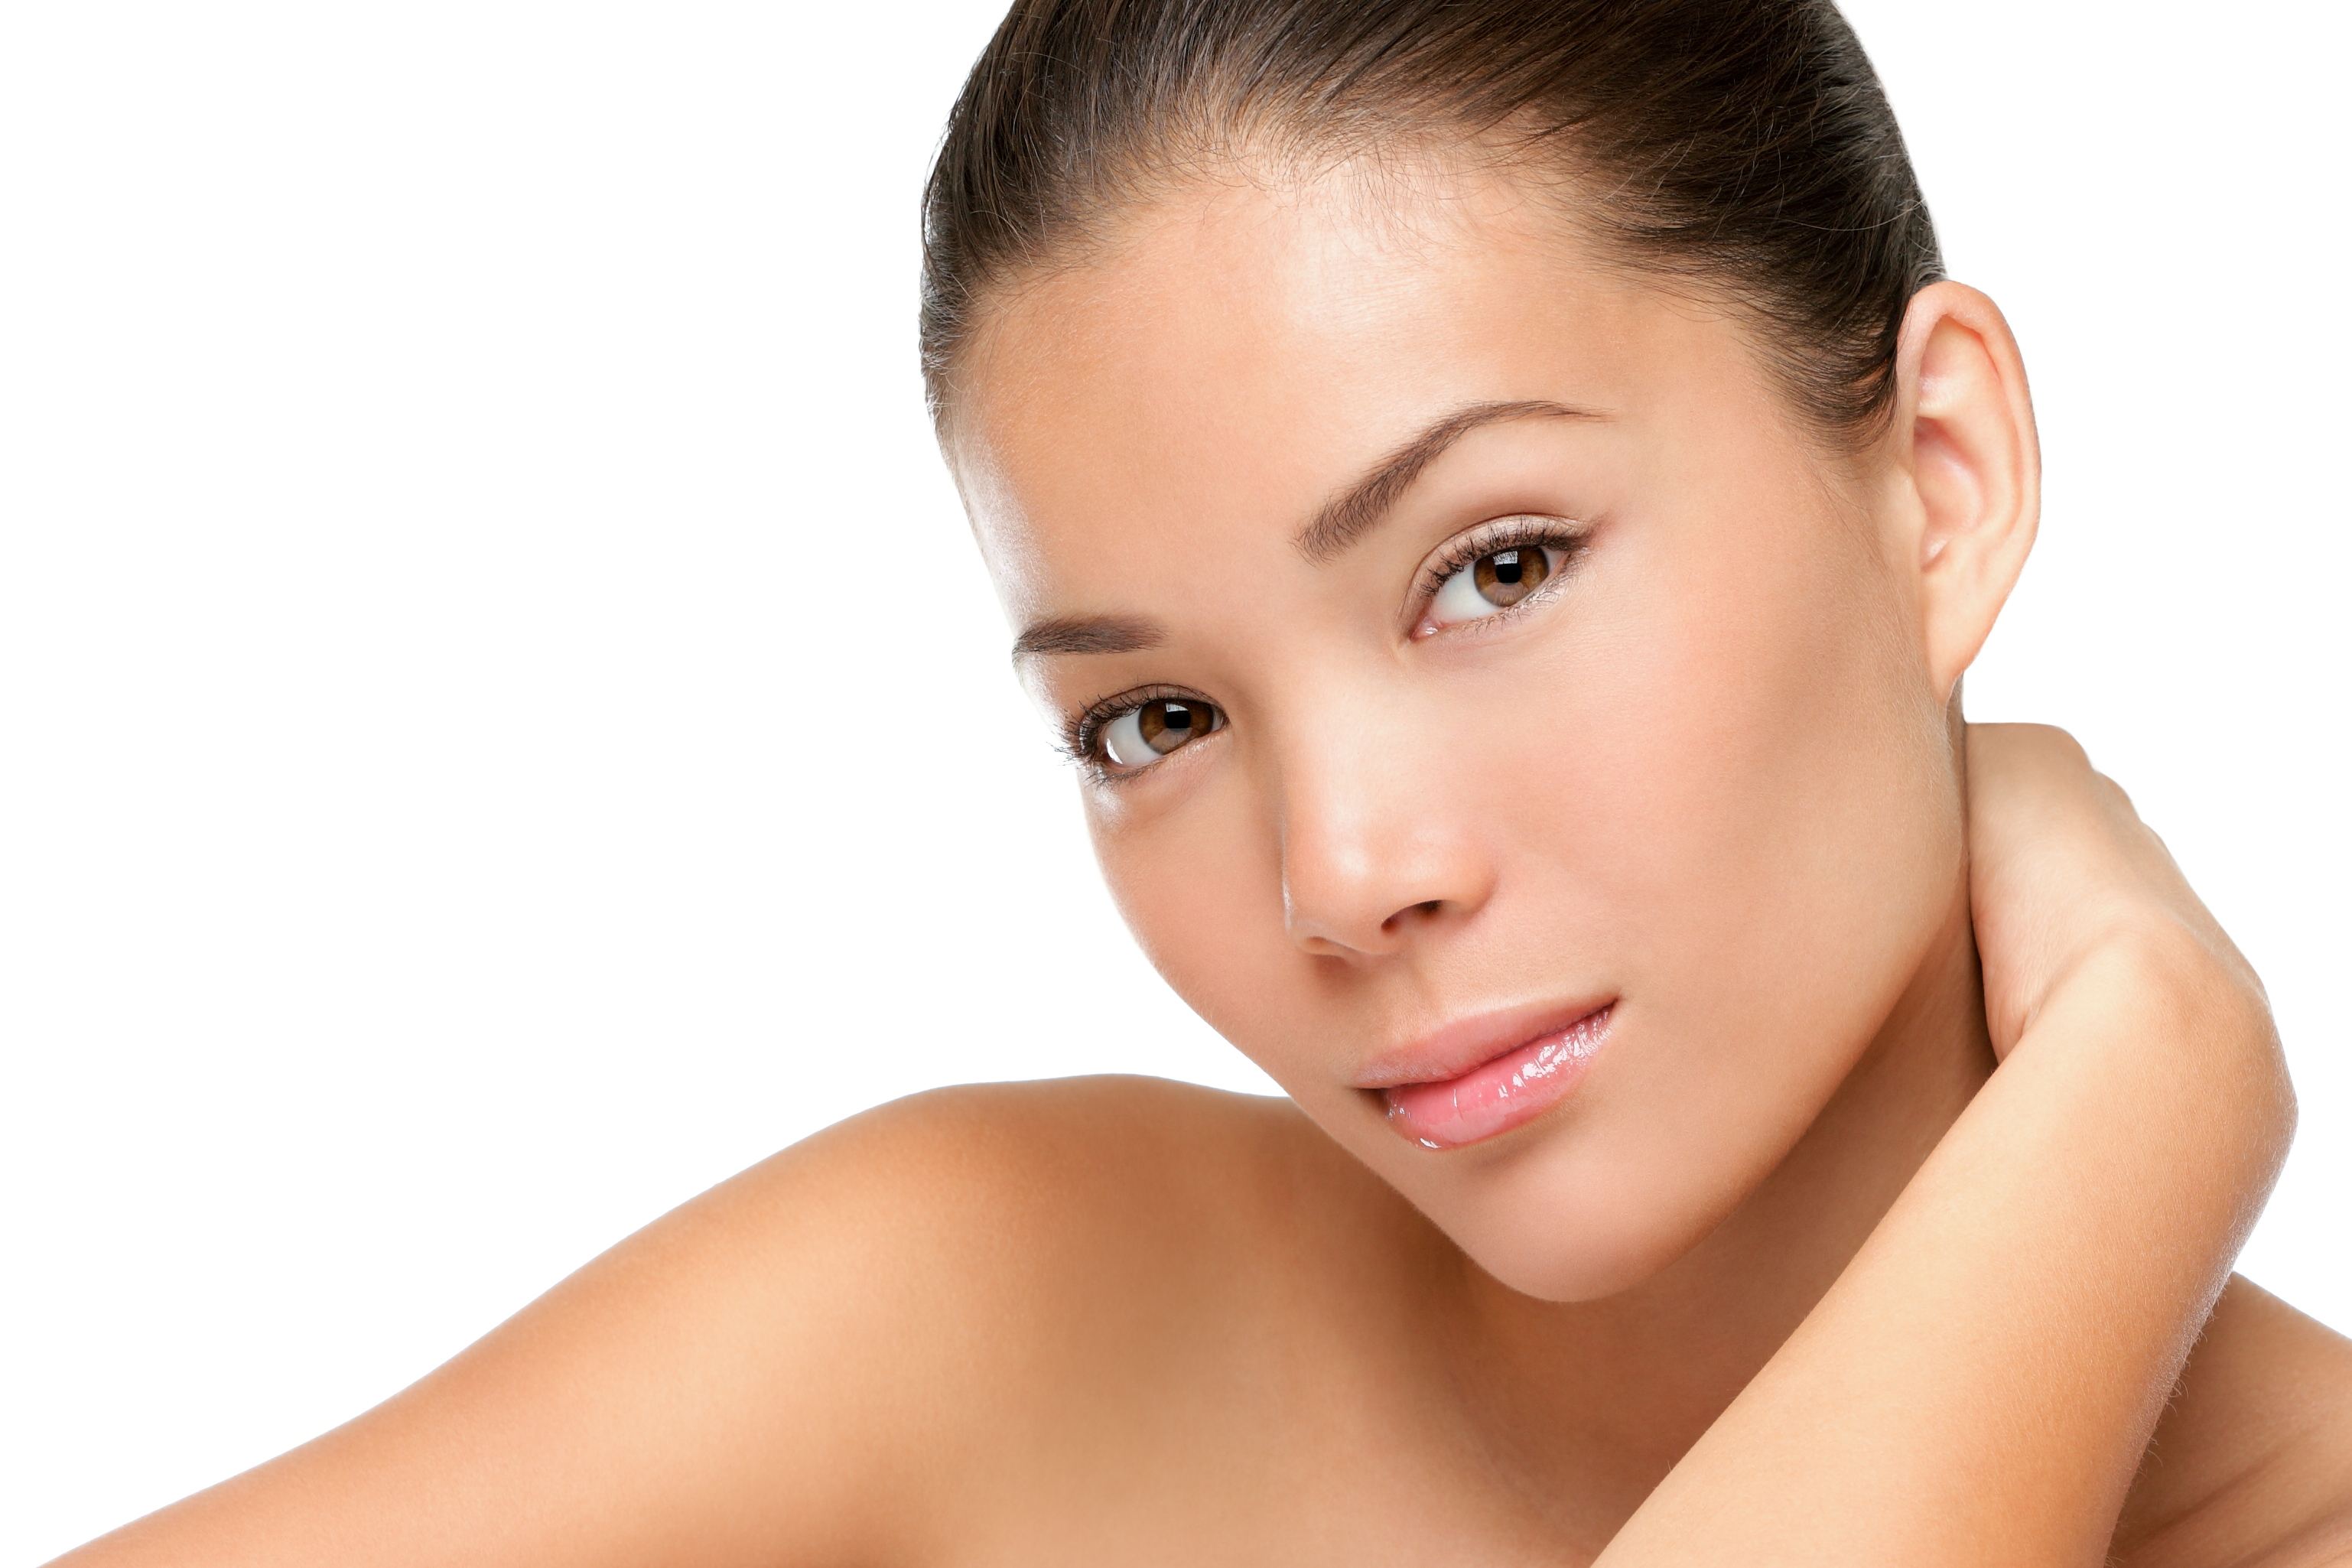 Mangat Plastic Surgery Institute and Skin Care Blog | Factors That Affect Breast Augmentation Cost